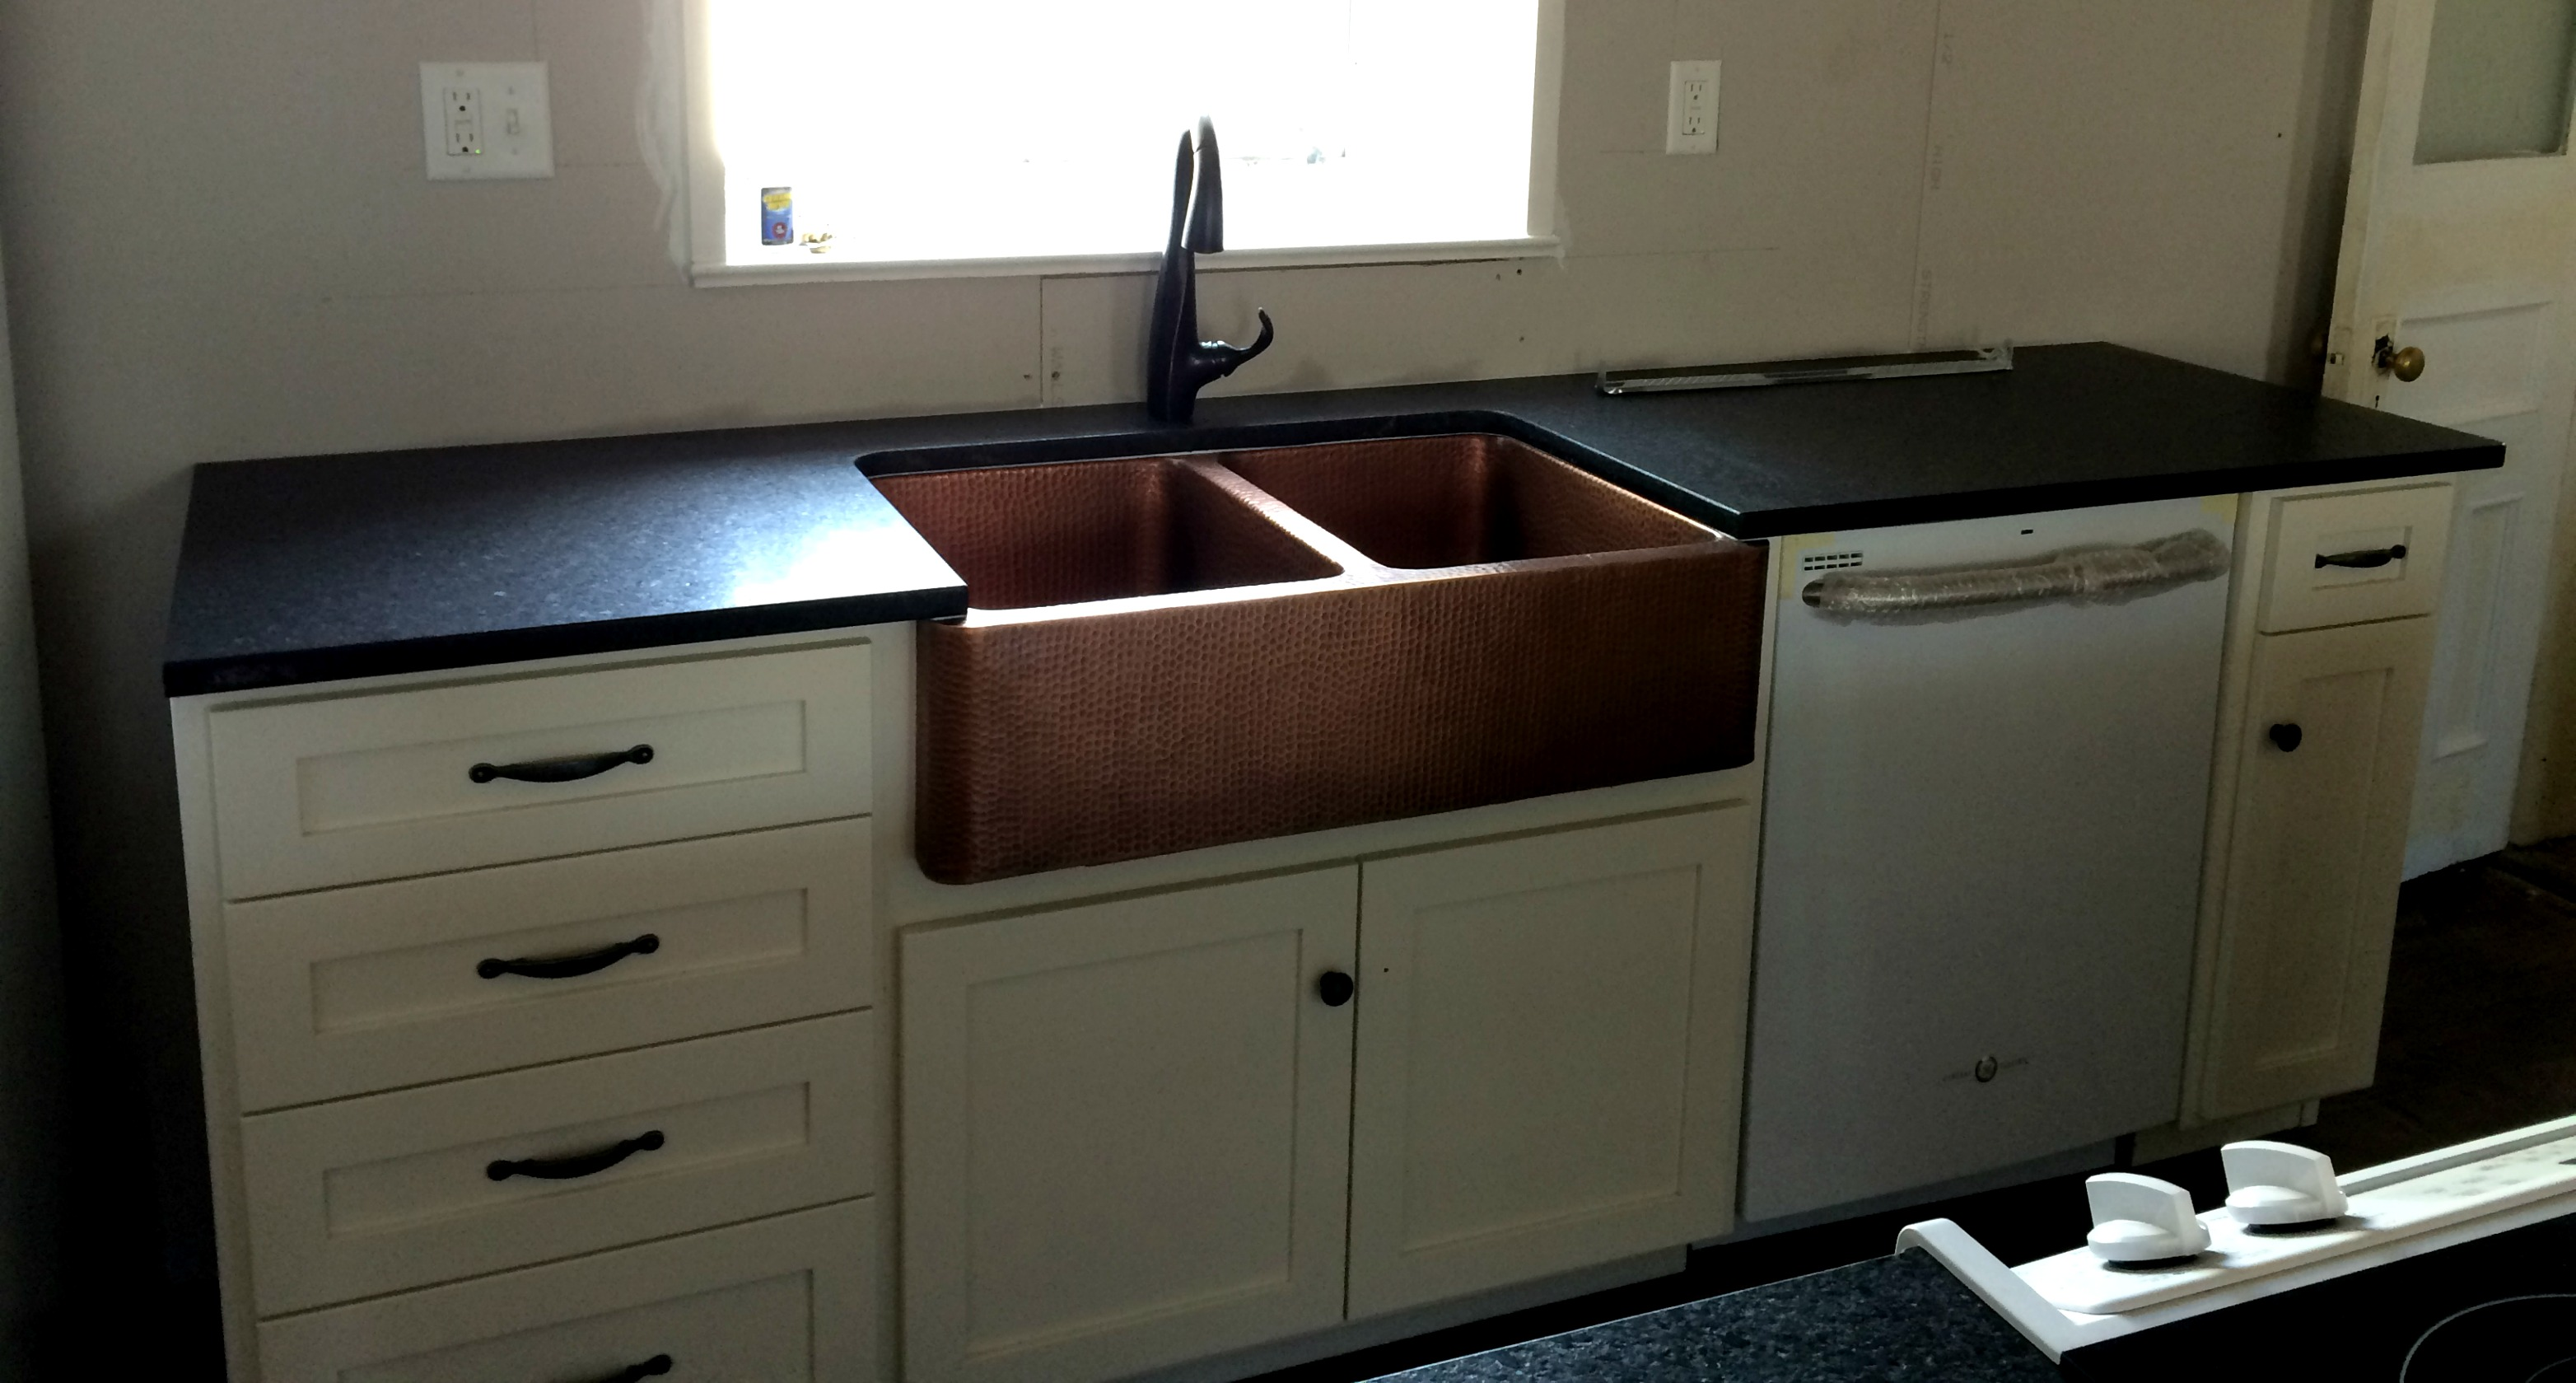 Black Granite Countertops Wood Island Leathered Granite Countertops  Installed